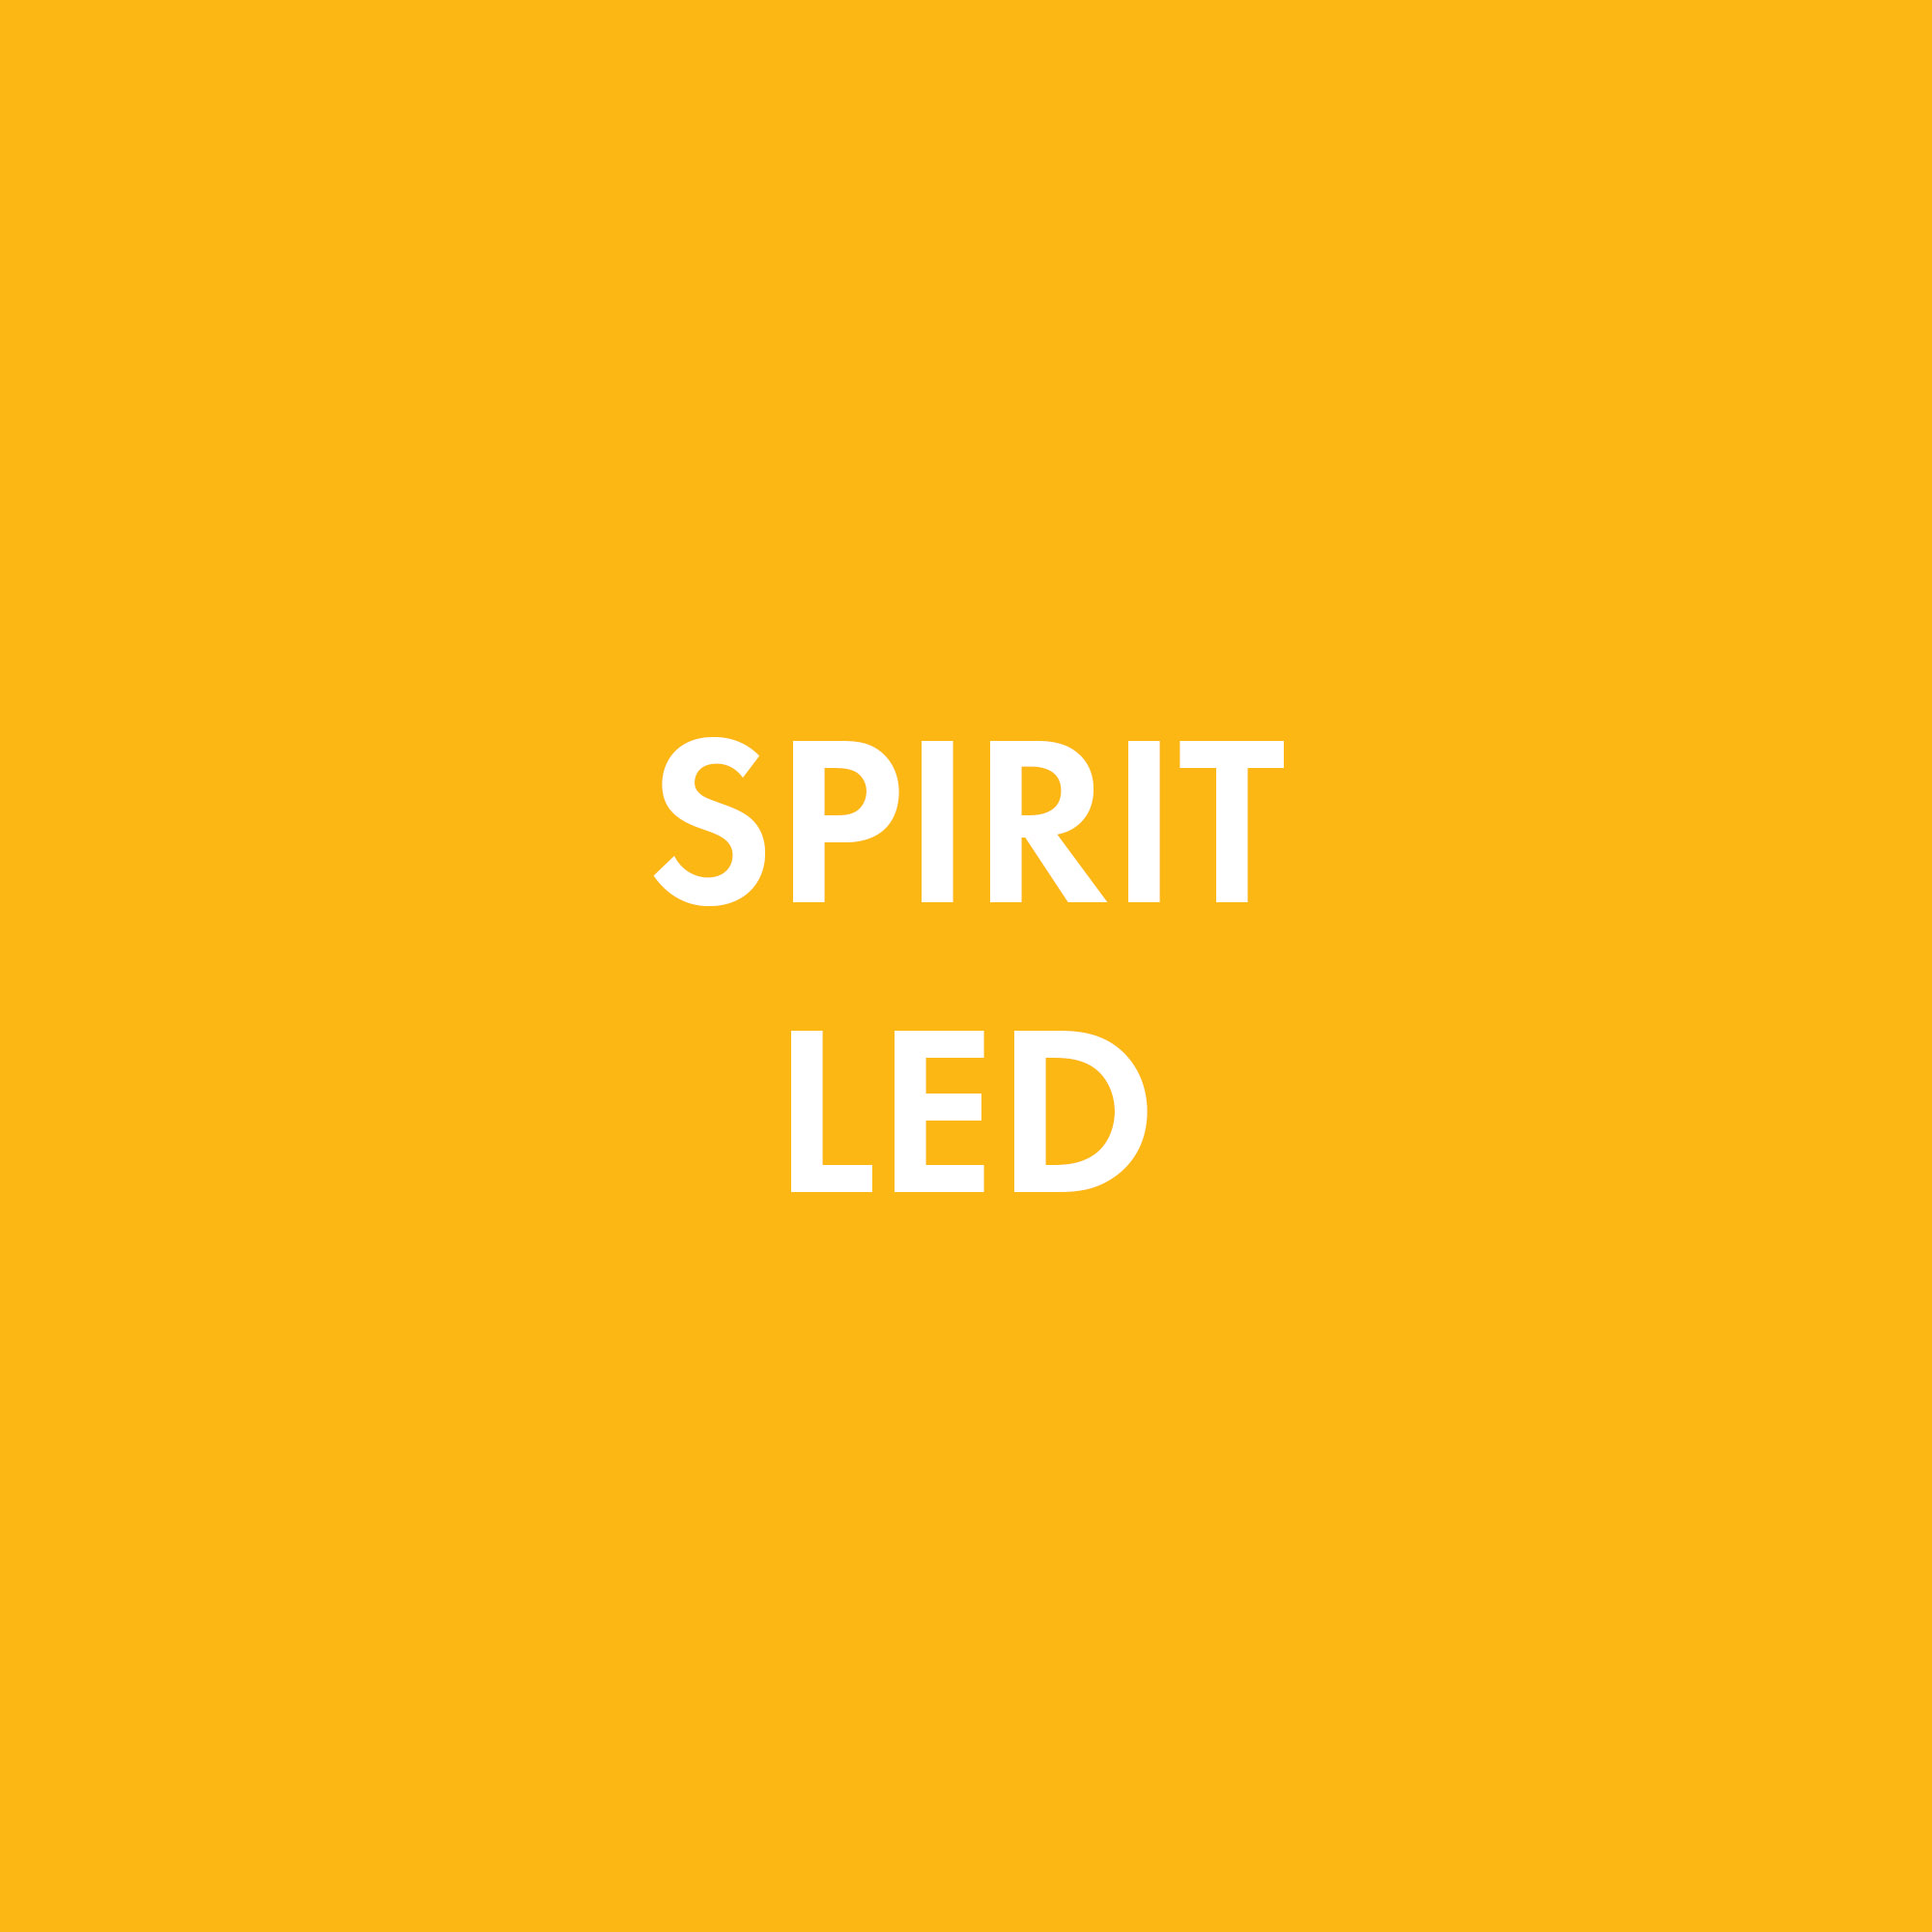 We seek to be responsive to the Holy Spirit in all life and ministry, enabling us to enjoy life, as well as being sustained in challenging times.